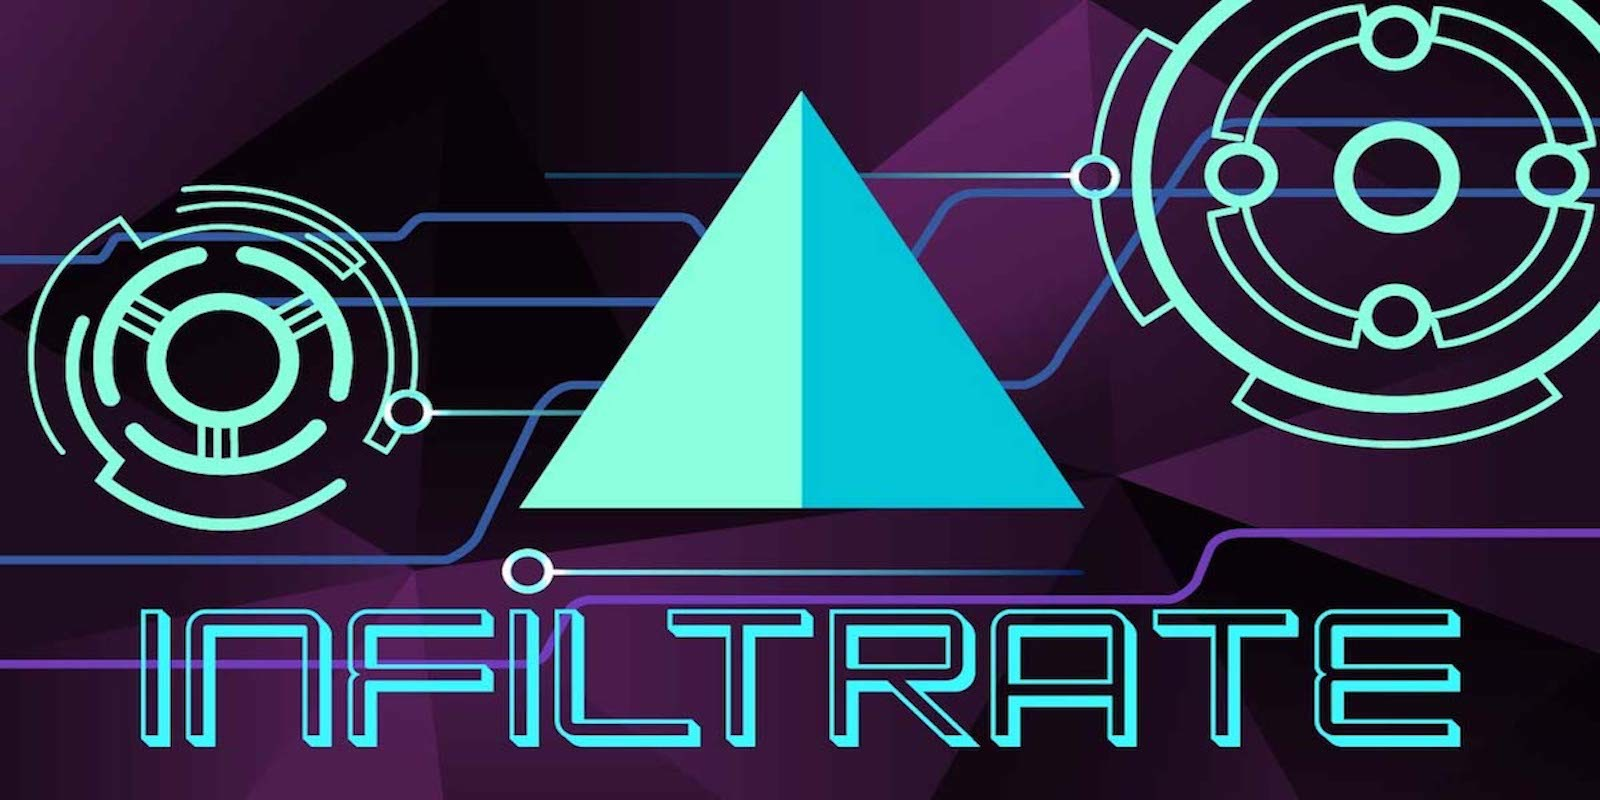 Infiltrate - Full Unity Game Project